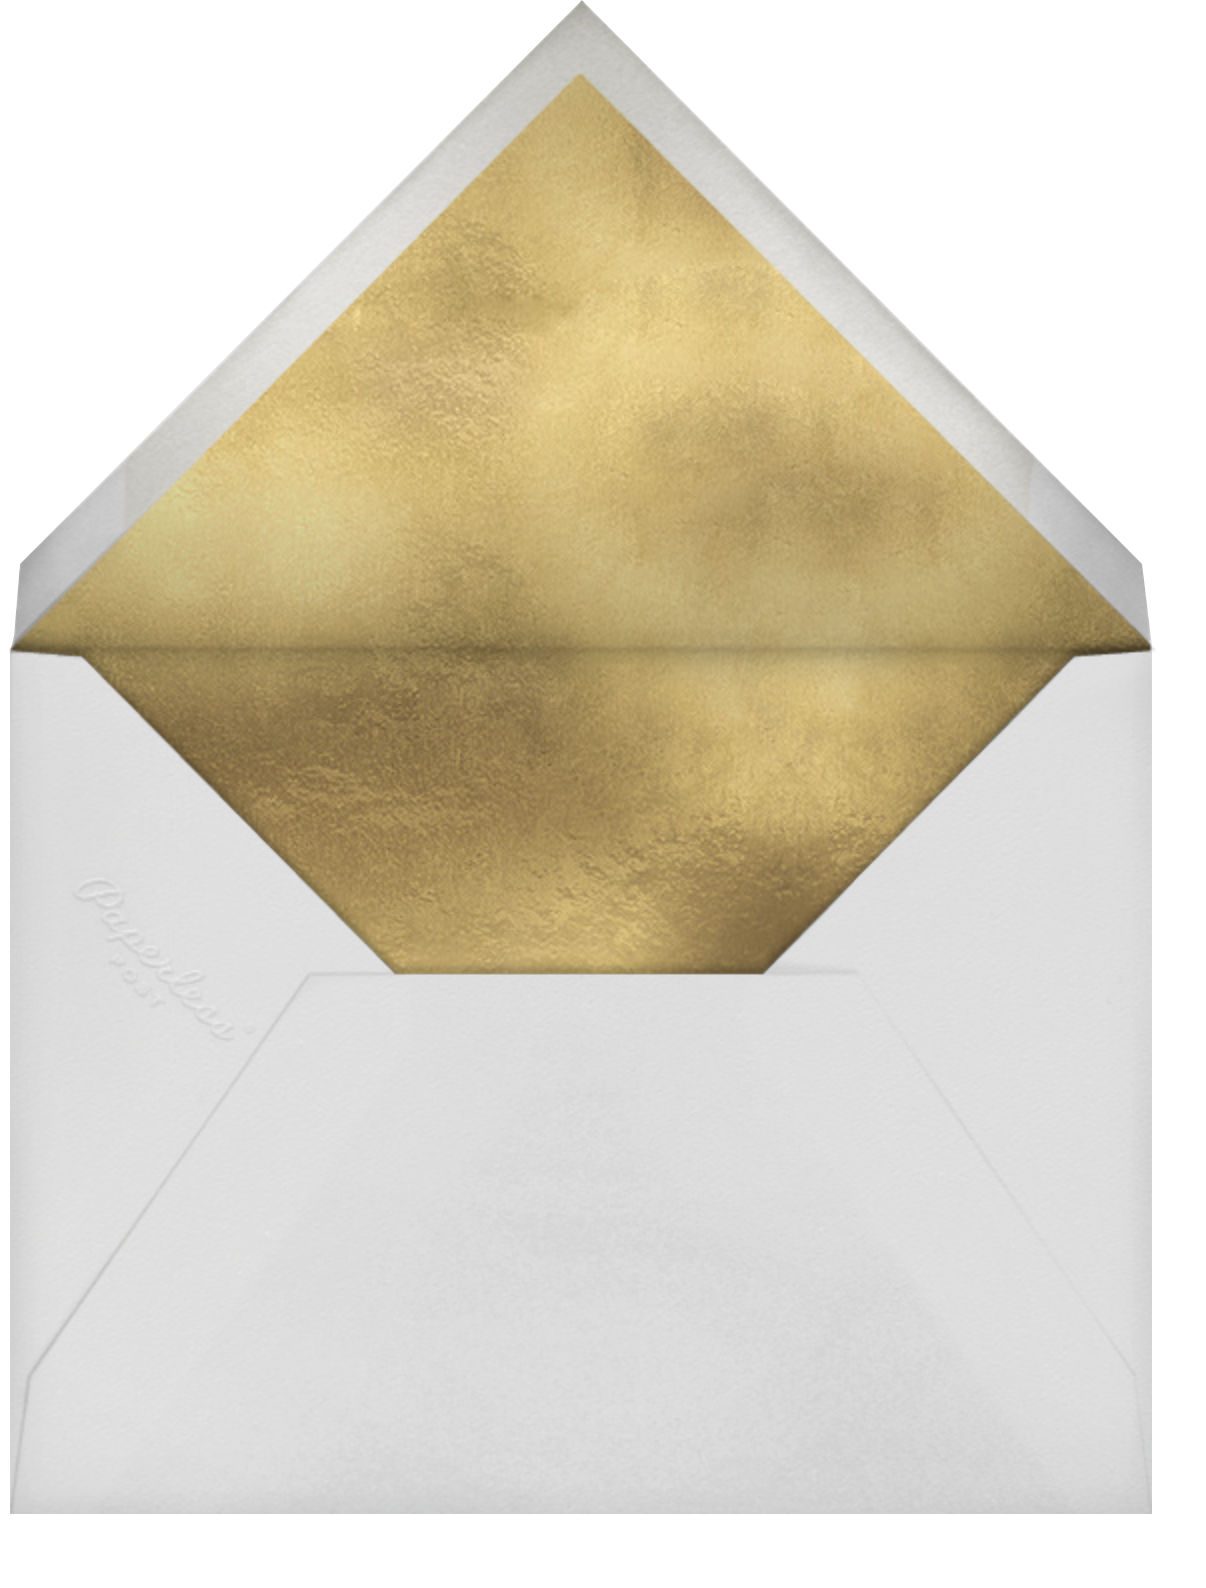 Amaranth Garland - Rifle Paper Co. - Anniversary party - envelope back